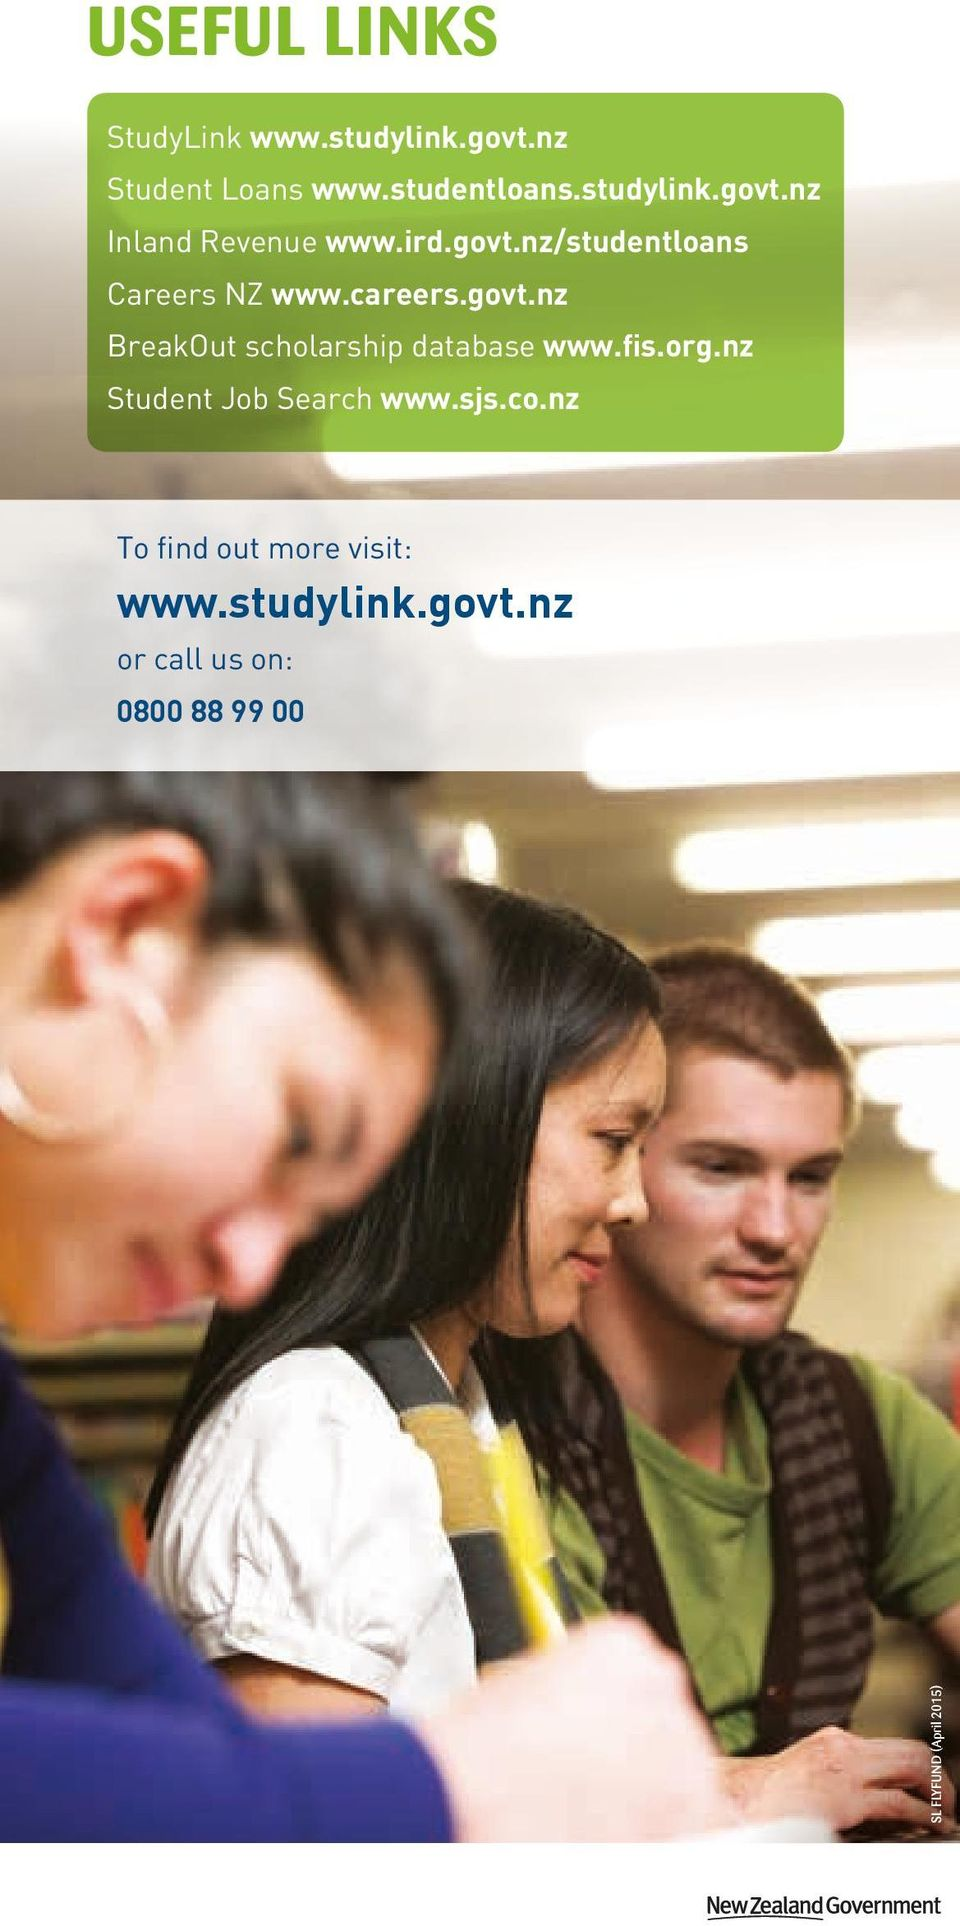 fis.org.nz Student Job Search www.sjs.co.nz To find out more visit: www.studylink.govt.